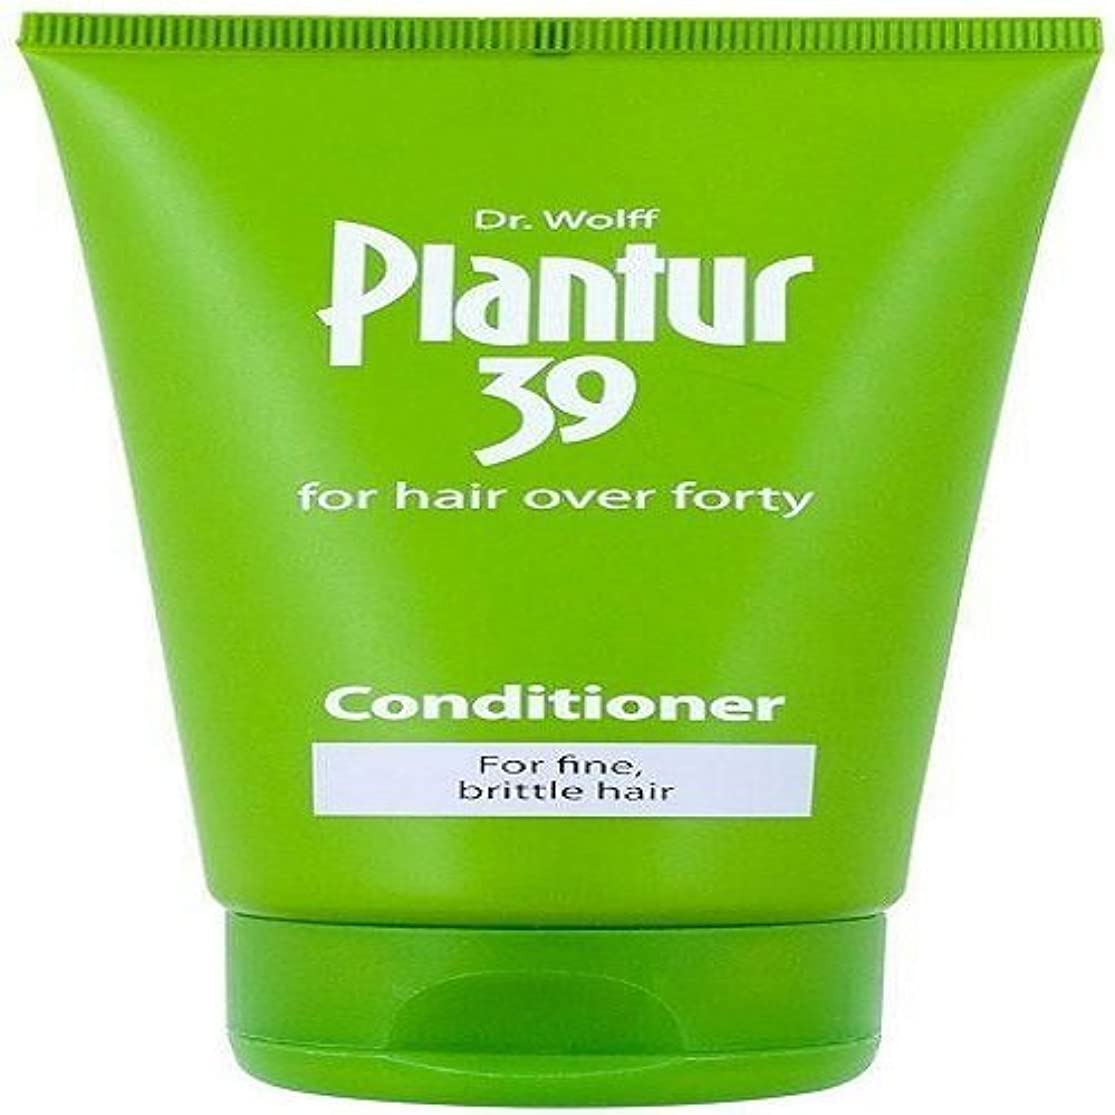 蜂規範出来事Plantur 39 150ml Fine & Brittle hair conditioner by Plantur [並行輸入品]